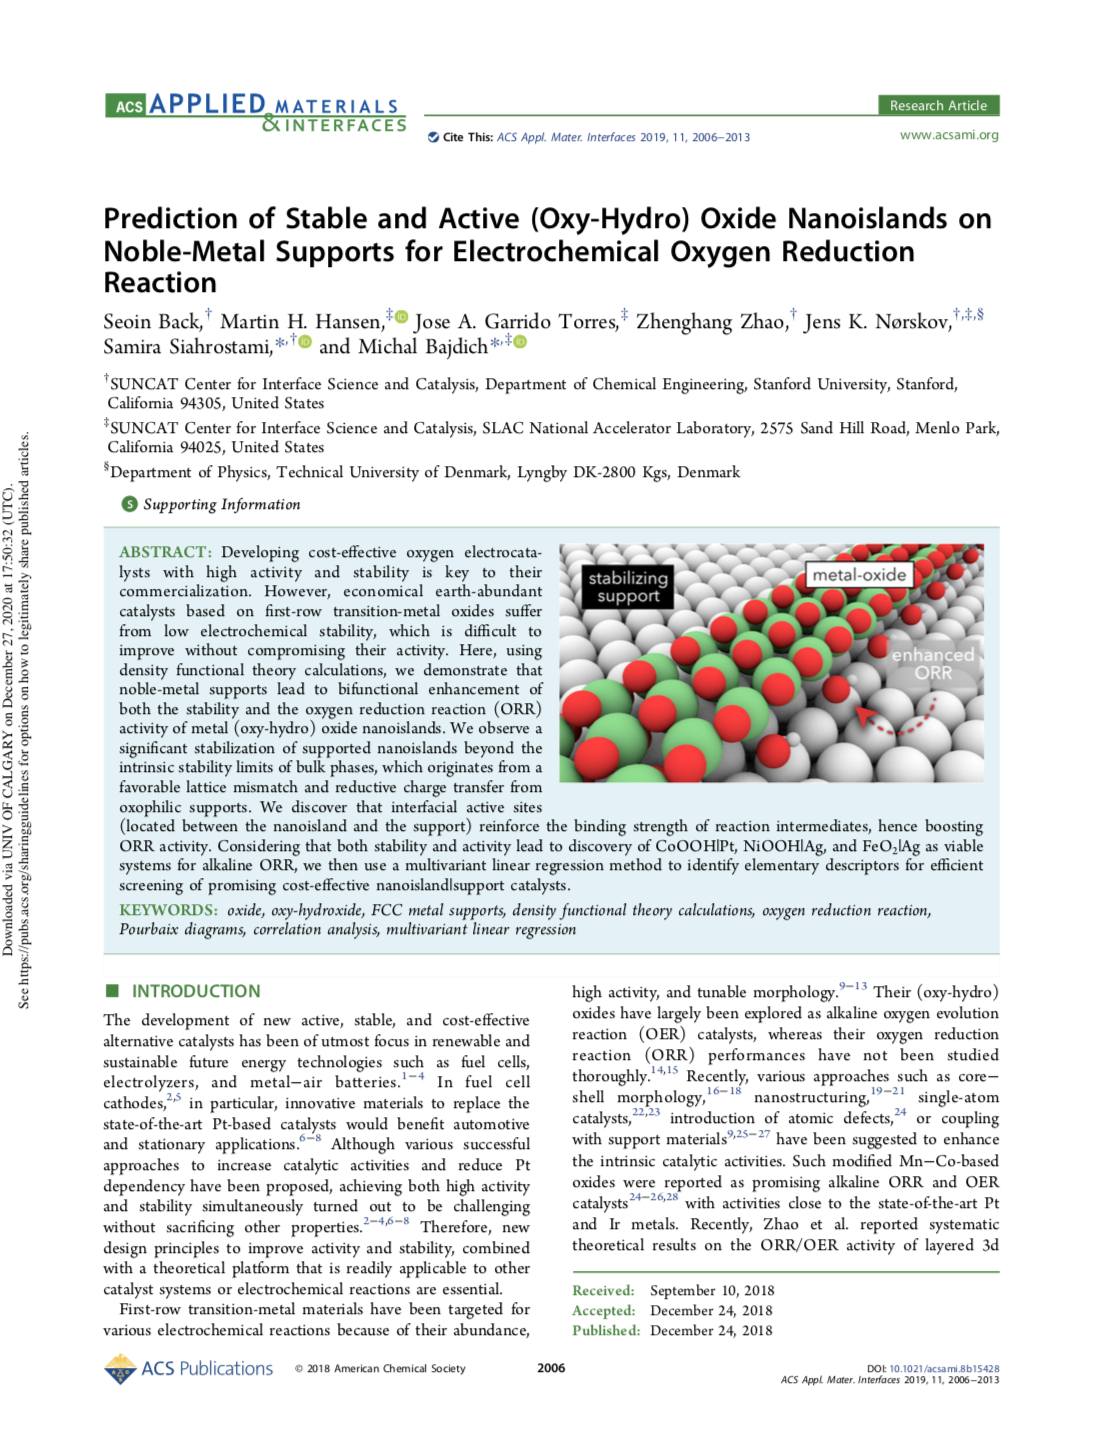 Prediction of Stable and Active (Oxy-Hydro) Oxide Nanoislands on Noble-Metal Supports for Electroche